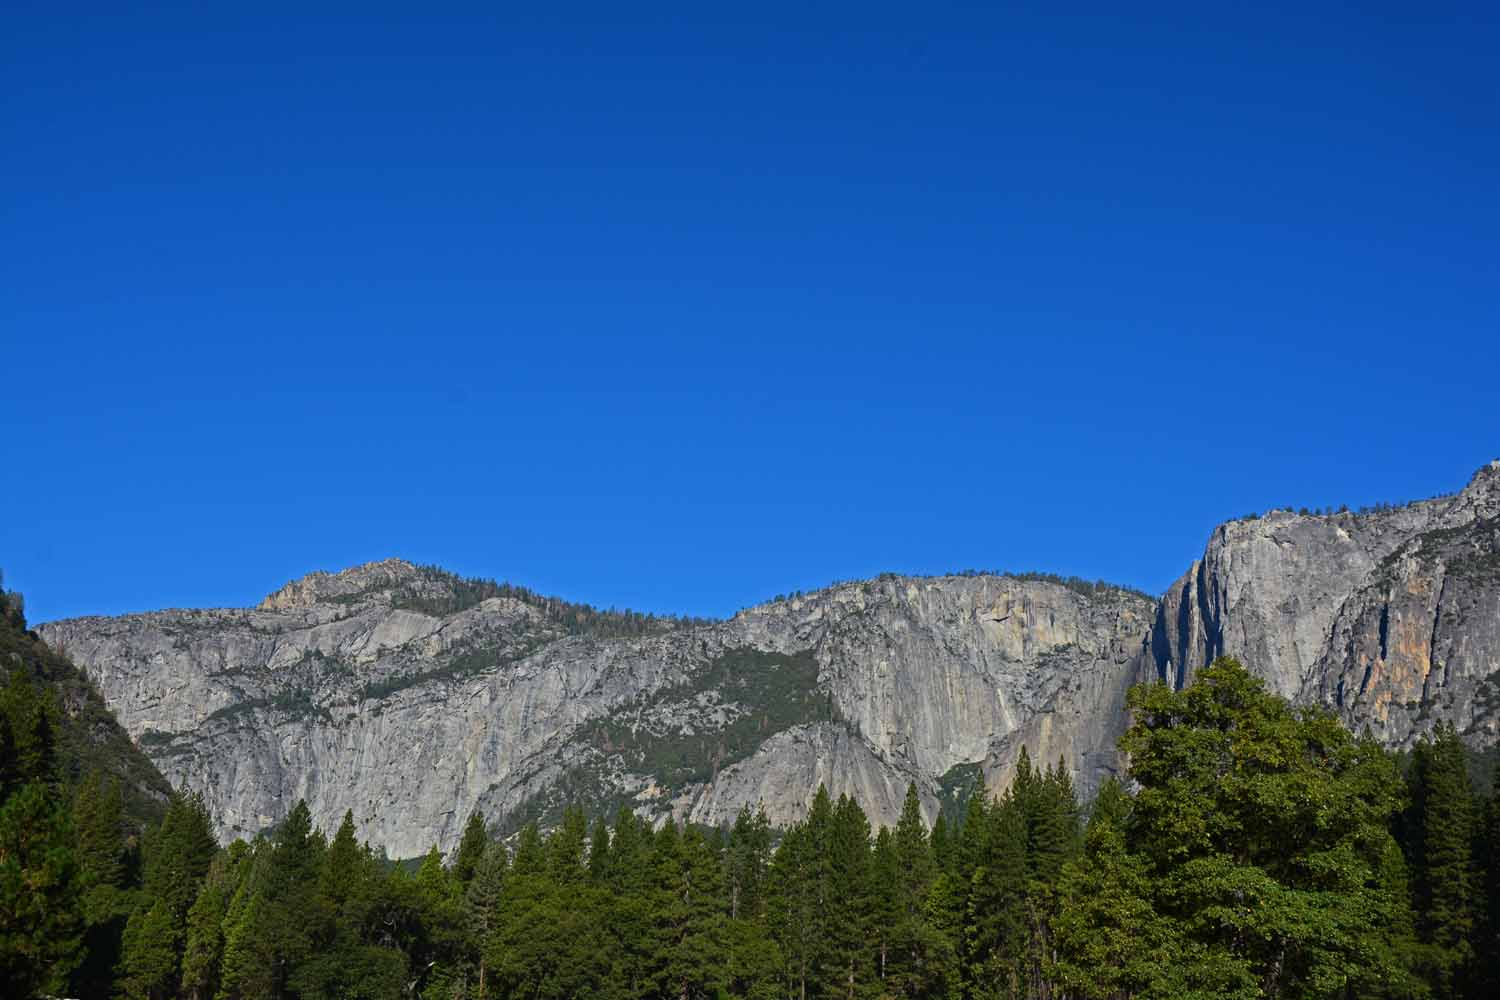 Taken from the valley floor.  The beauty of the Yosemite NP is breathtaking.